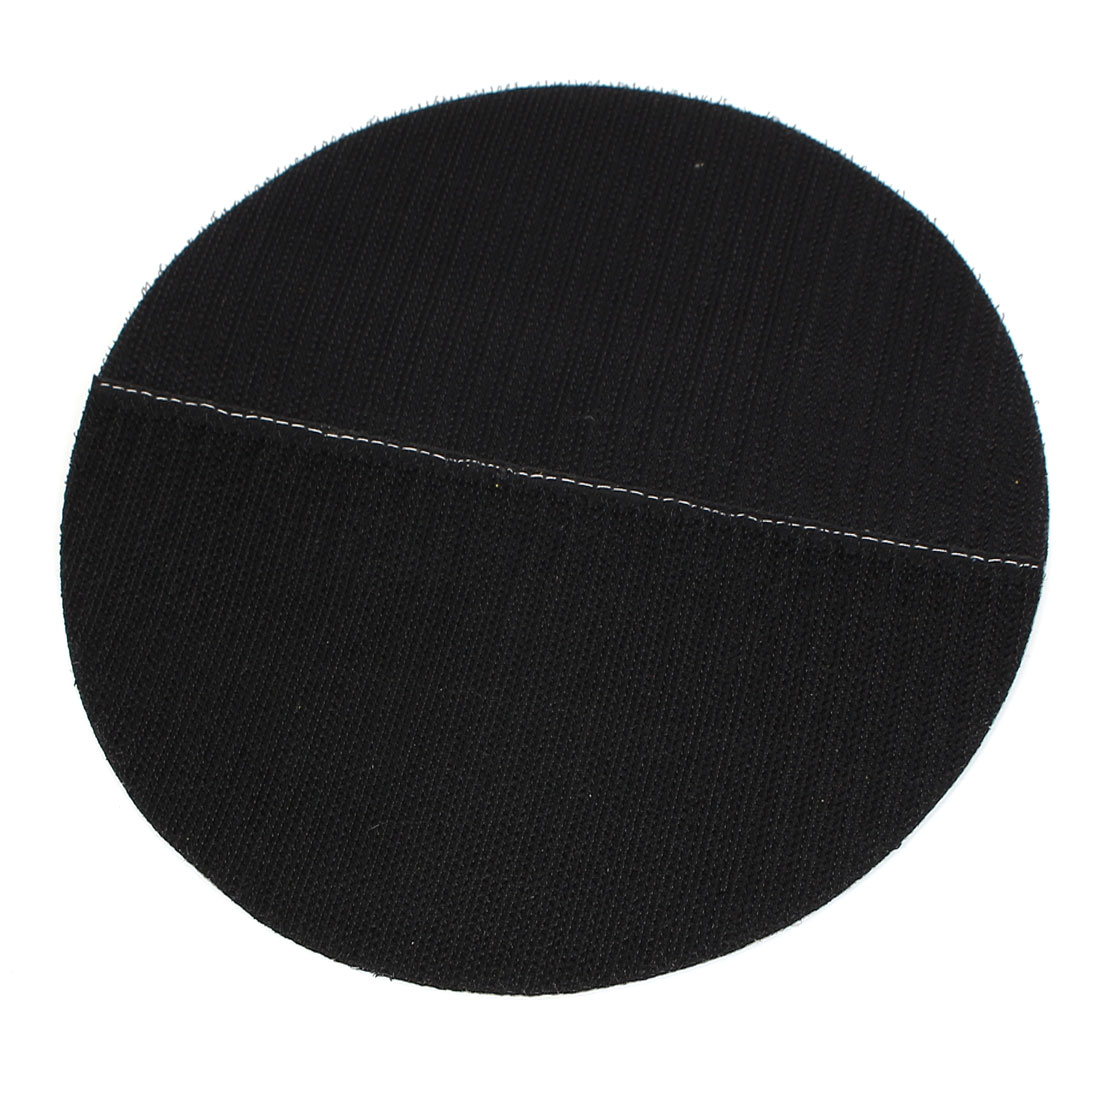 "7"" 180mm Diameter Round Hook and Loop Polishing Pad Mat Rotary Tool Black"